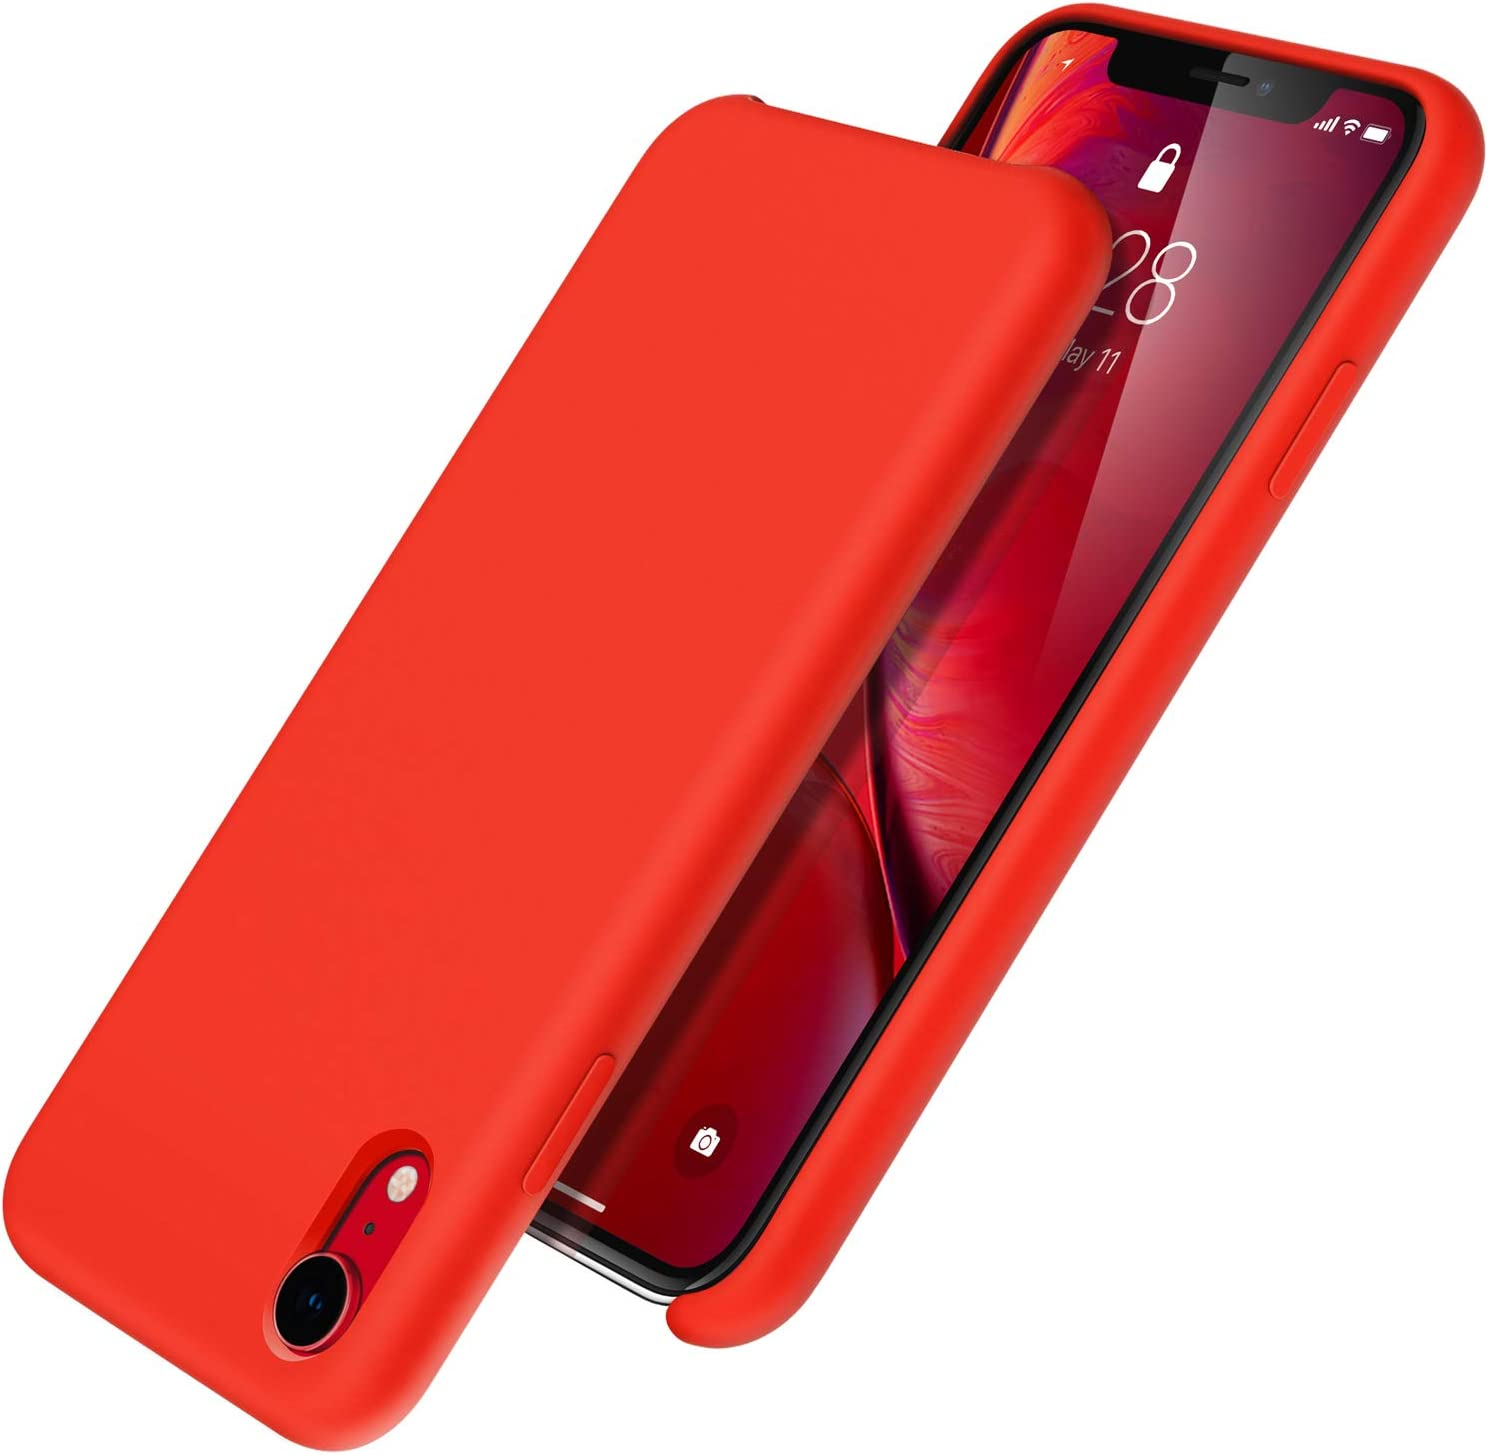 UGT iPhone XR Case, Liquid Silicone Rubber Slim Shockproof Case Microfiber Cloth Lining Compatible with Apple iPhone XR 6.1 inch, Red